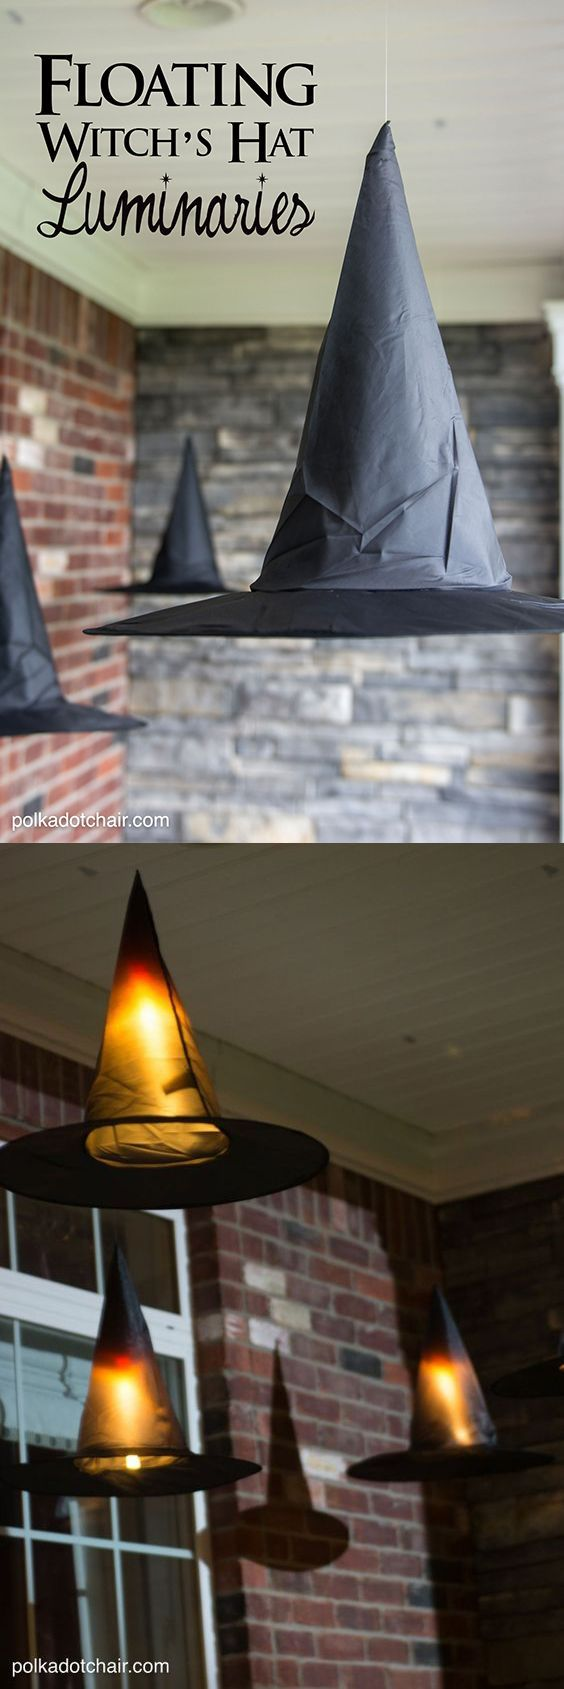 diy floating witch hat luminaries party decoration ideasparties decorationshalloween - Halloween Party Decoration Ideas